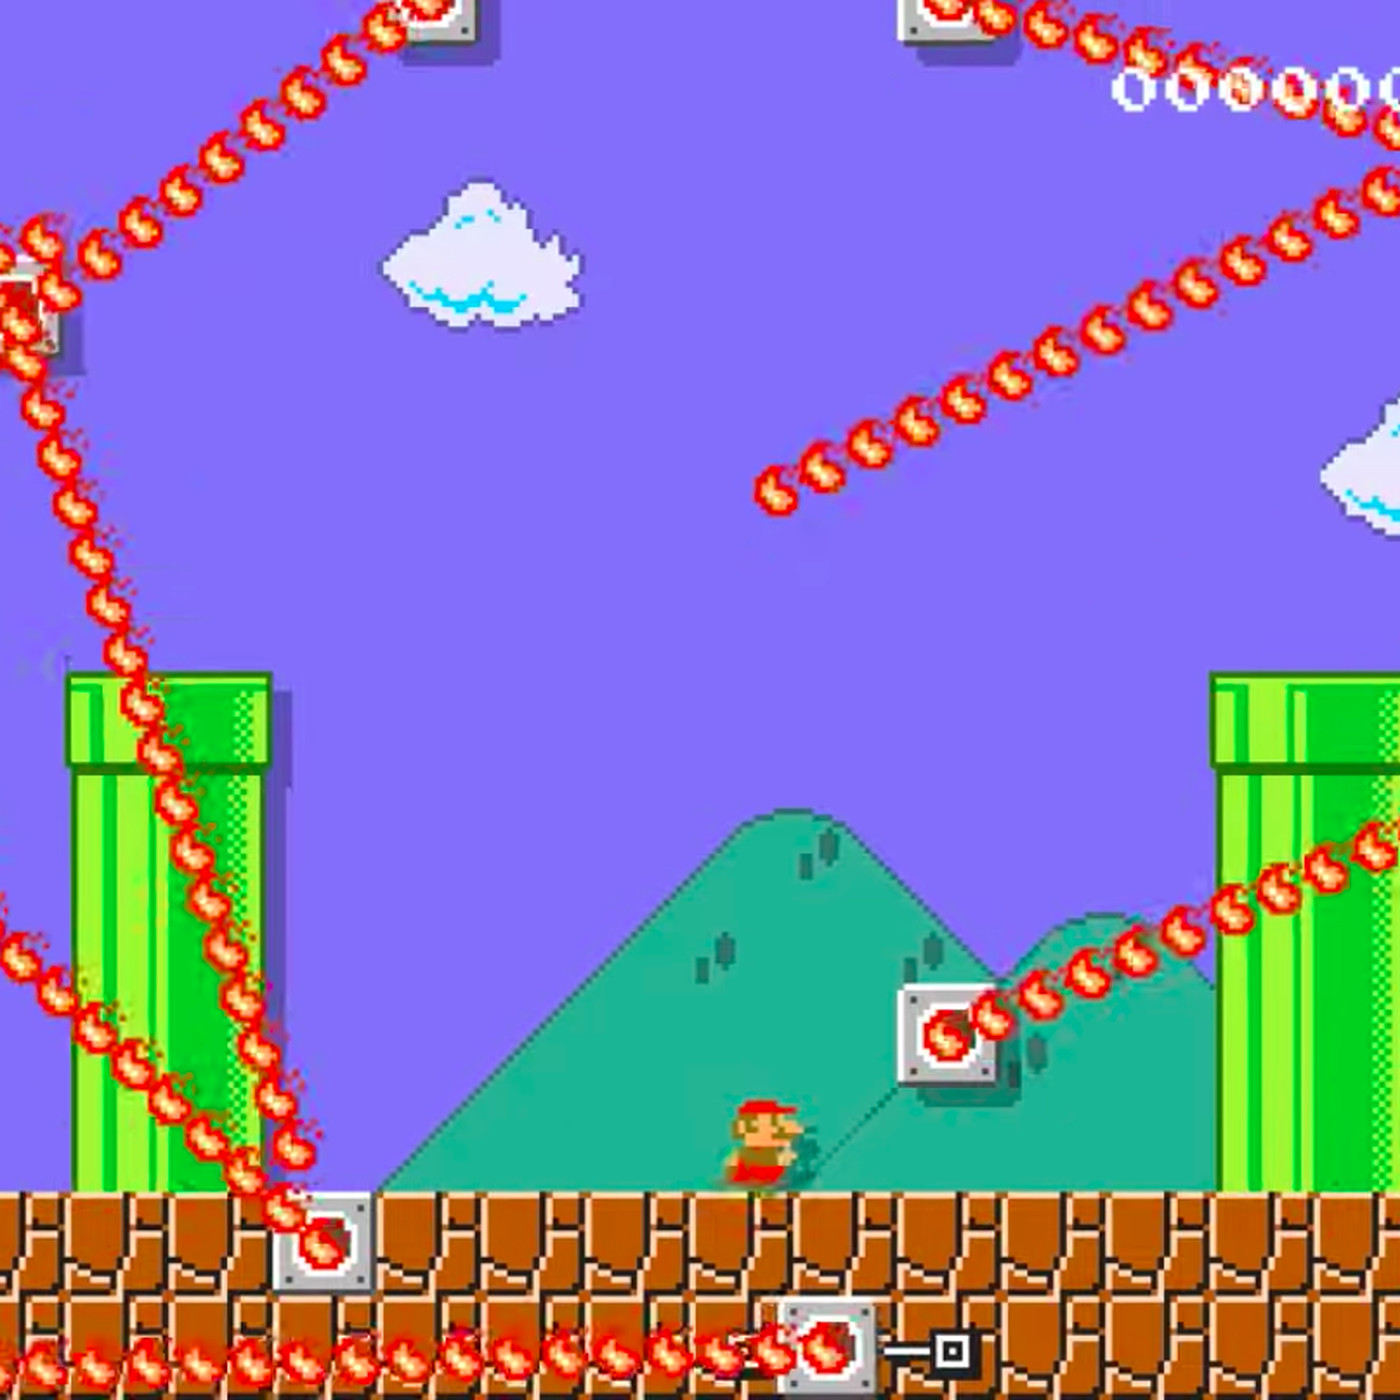 This might be the hardest Super Mario Maker 2 level ever